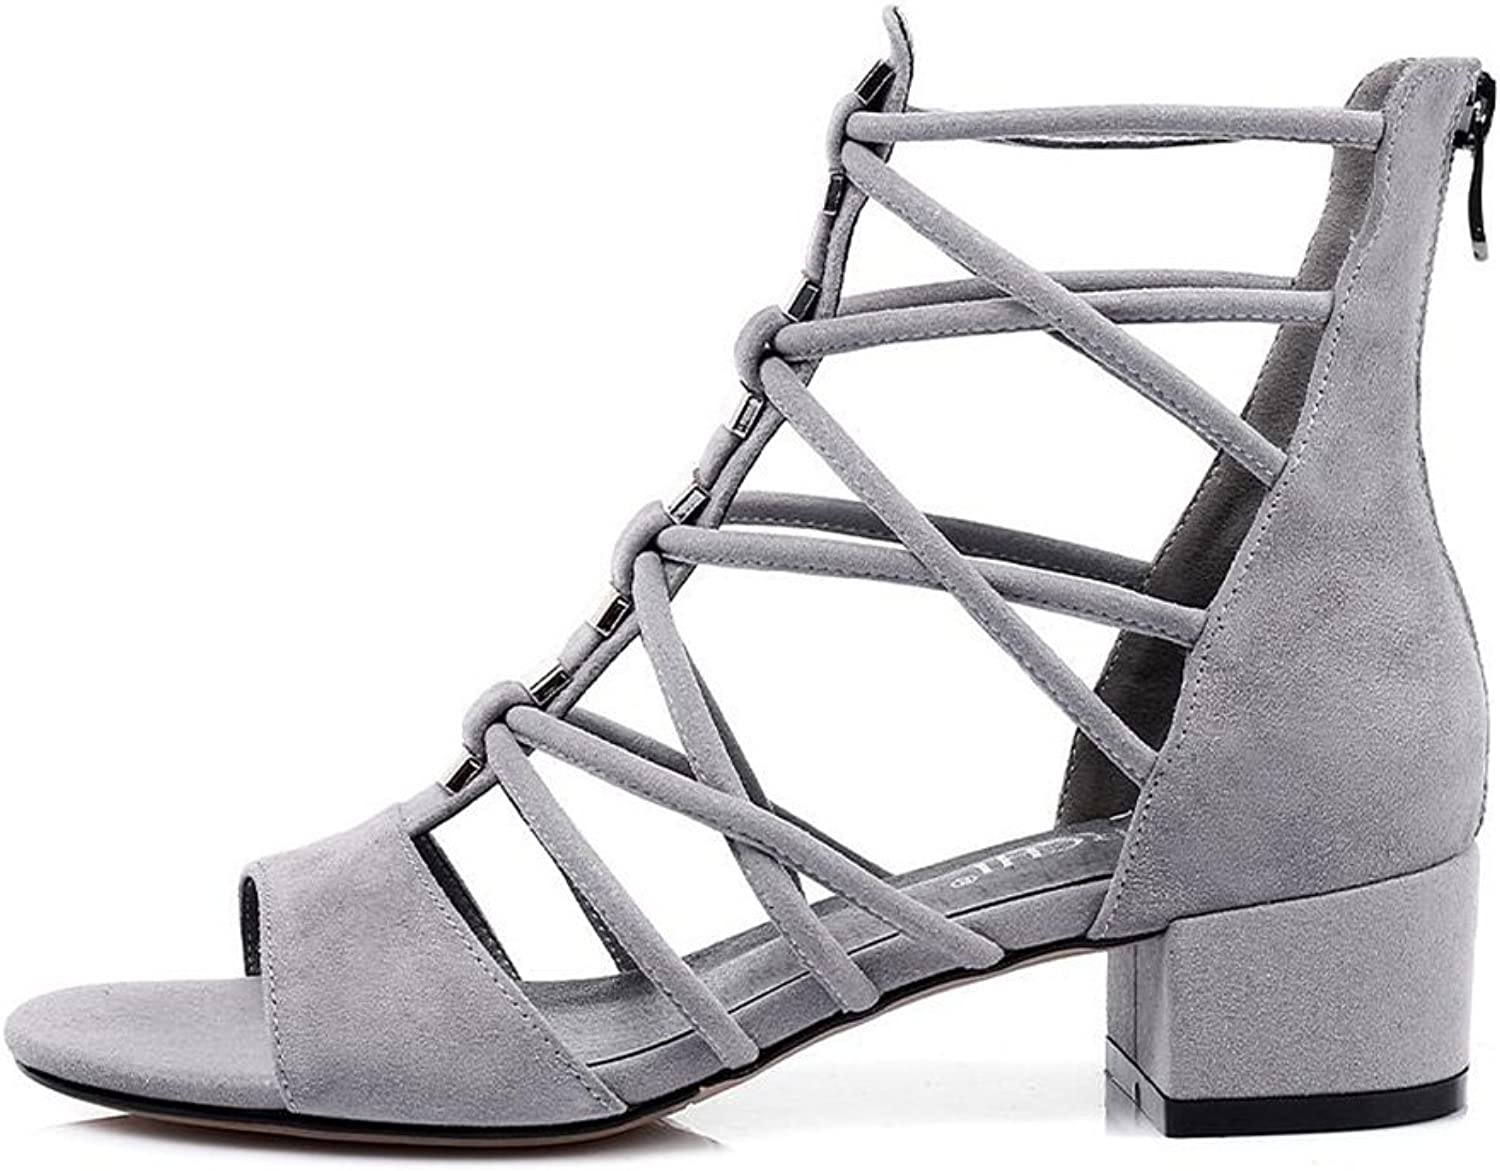 CJC Sandals Mid Heel Frosted Ladies Womens Wedding Bridal Prom shoes